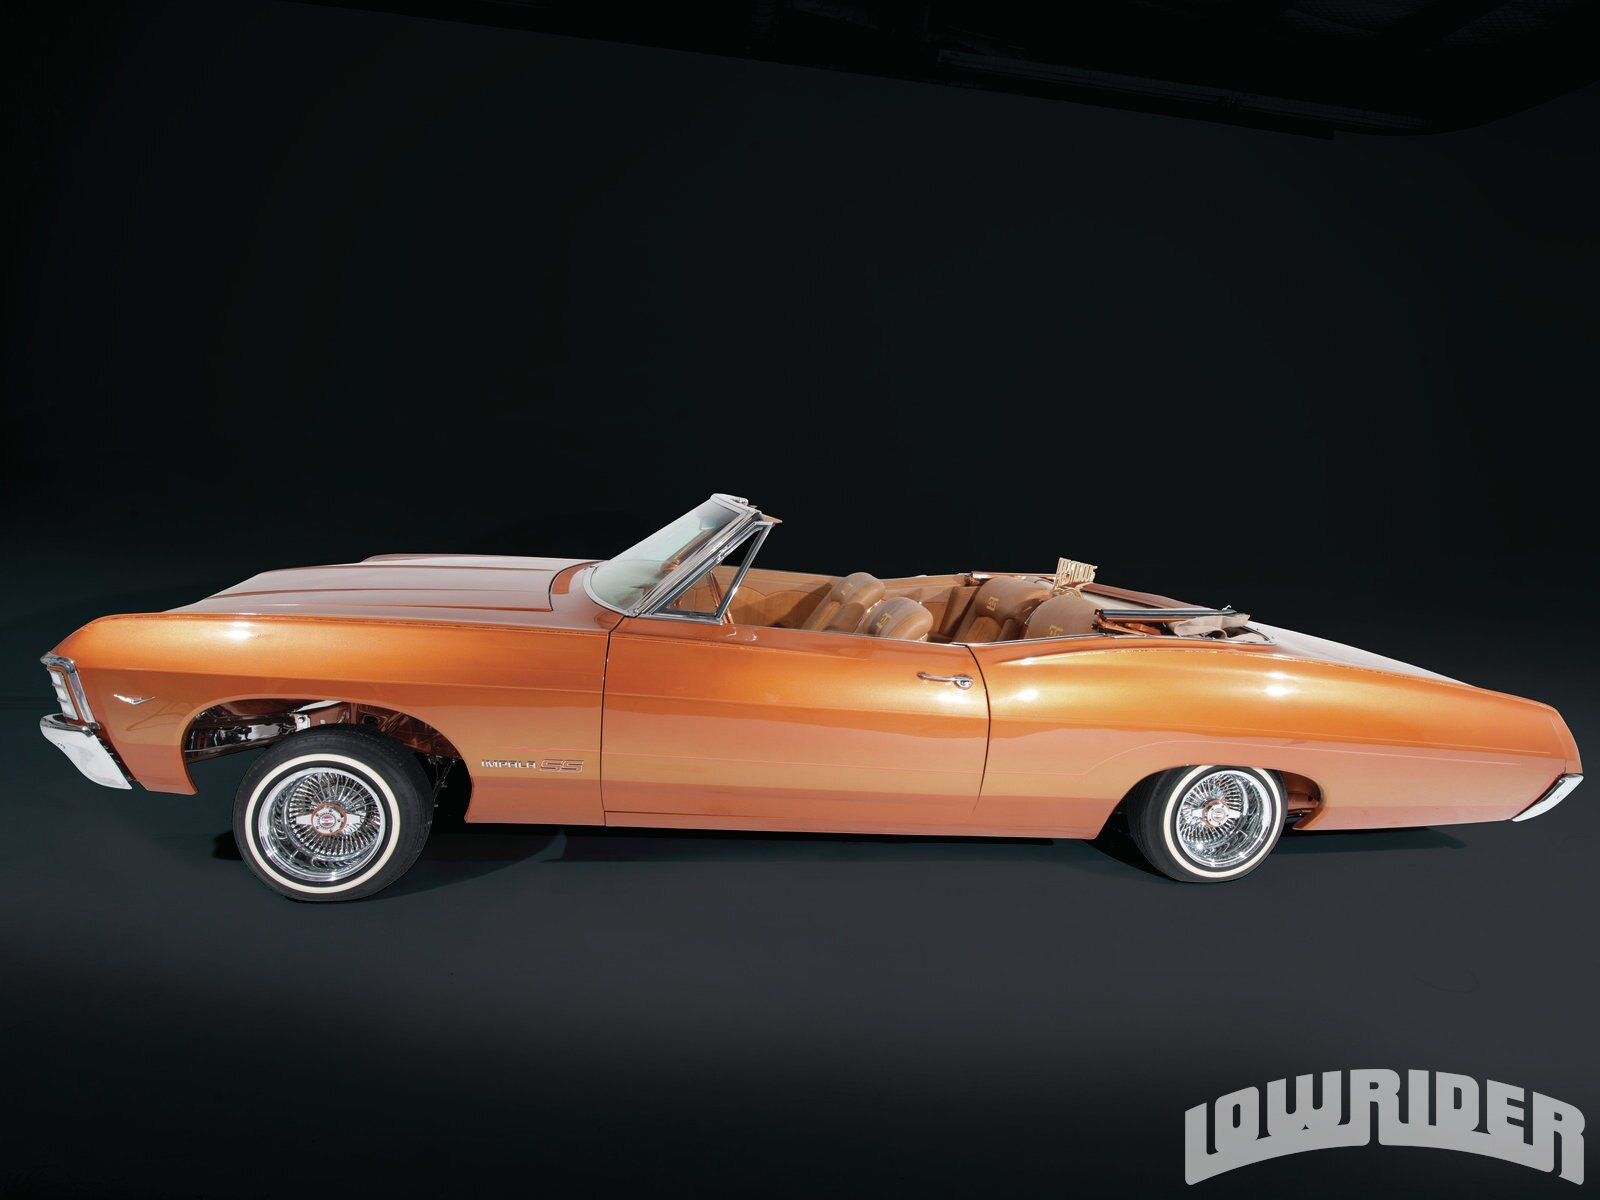 1205-lrmp-02-o-1967-chevrolet-impala-convertible-supersport-driver-side-profile1